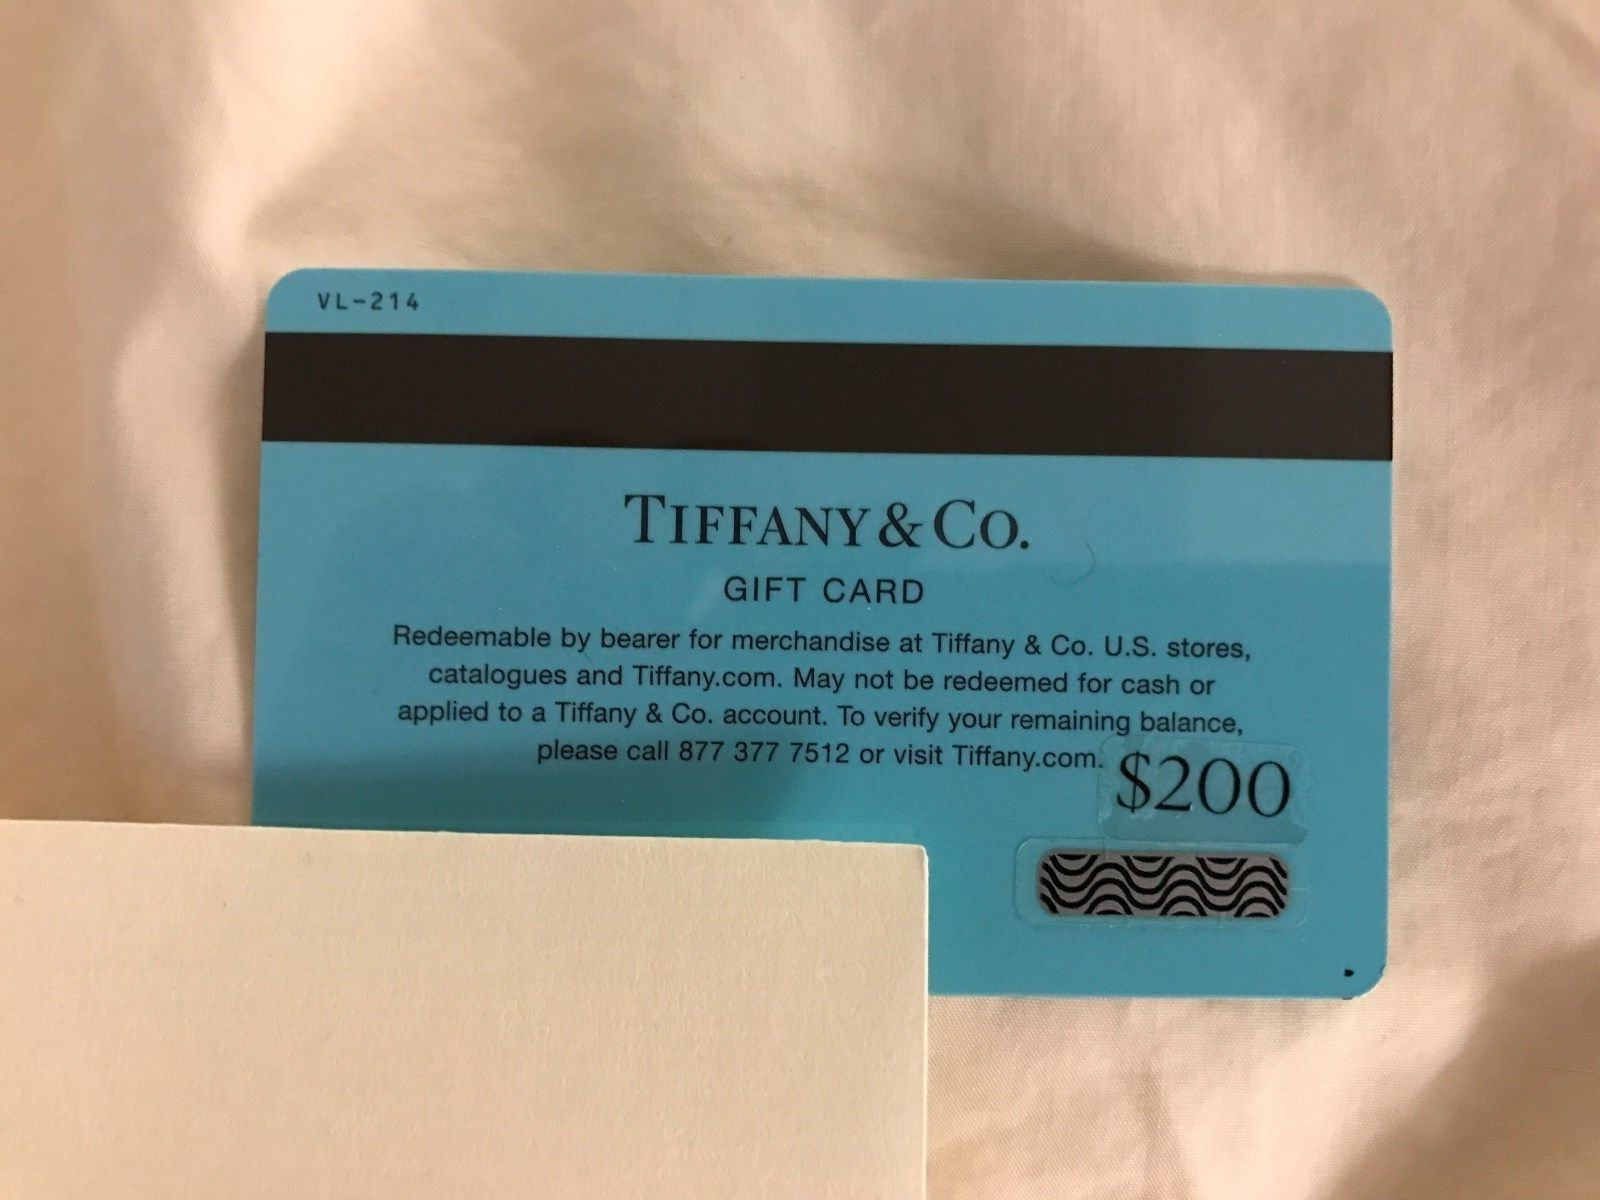 Coupons Giftcards 200 Tiffany Co Gift Card Coupons Giftcards Gift Card Ebay Gift Tiffany Co